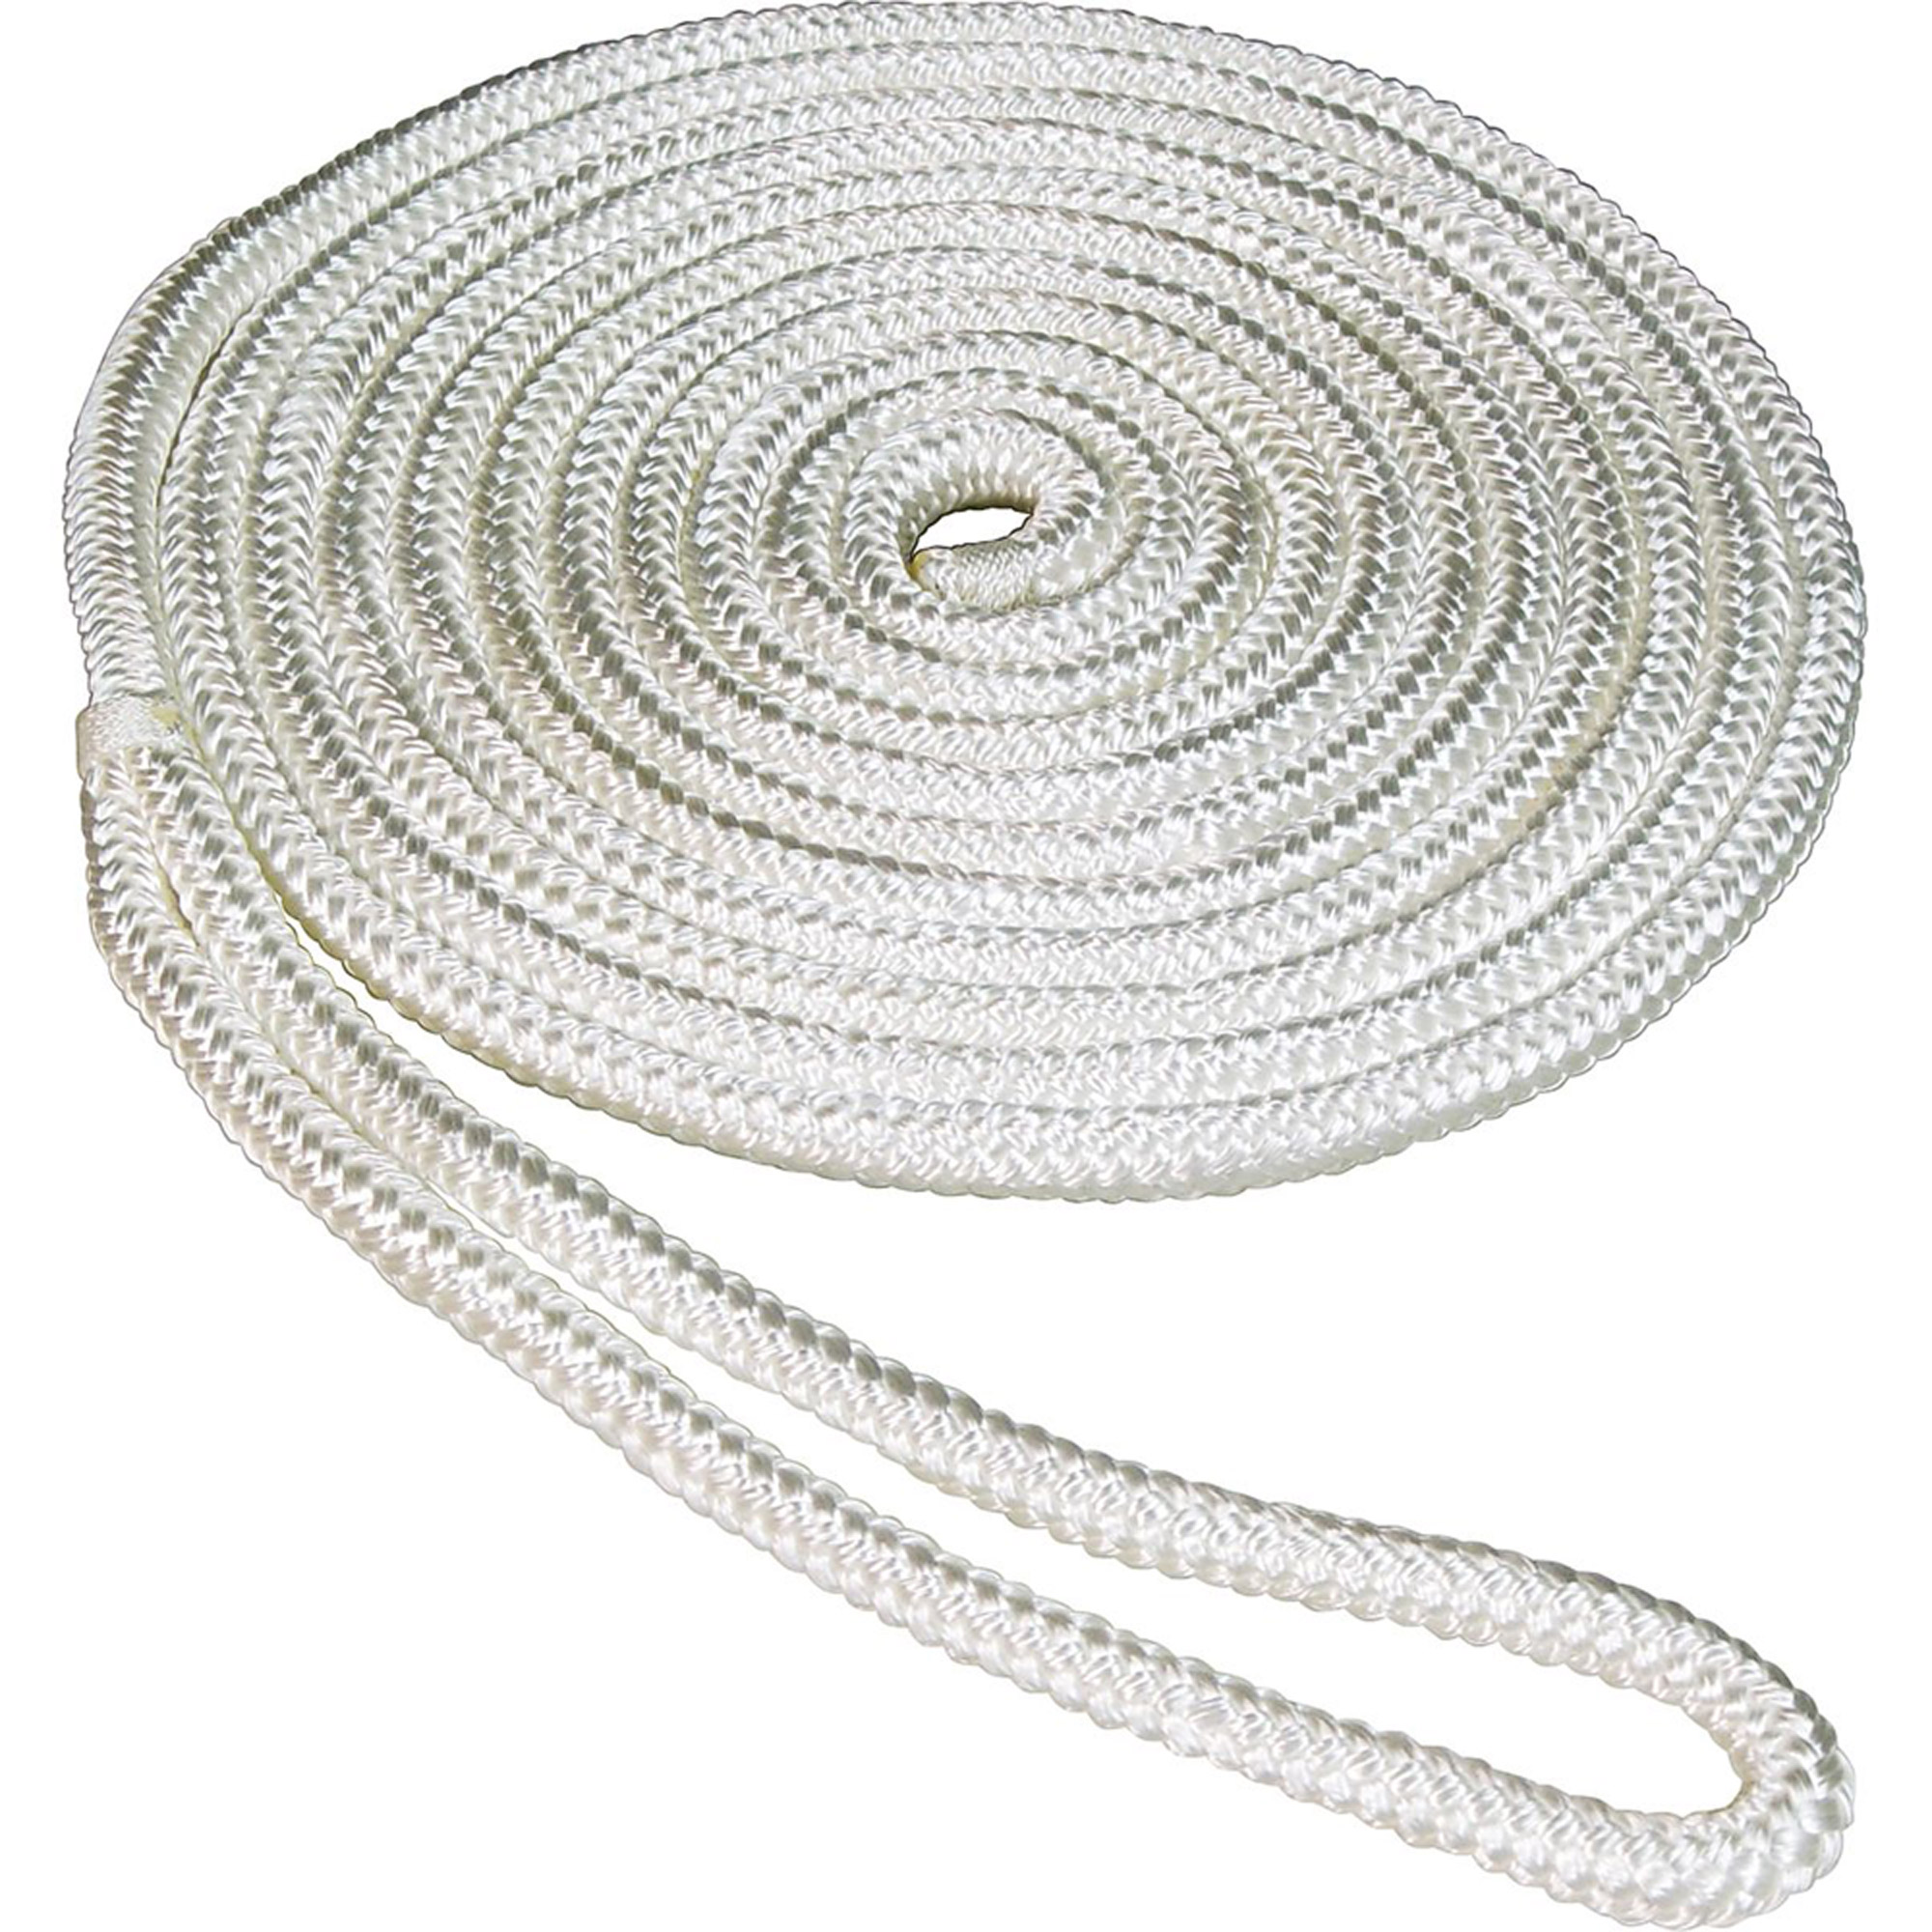 "Click here to buy SeaSense Double Braid Nylon Dock Line, 1 2"" x 35', 12"" Eye, White by Generic."